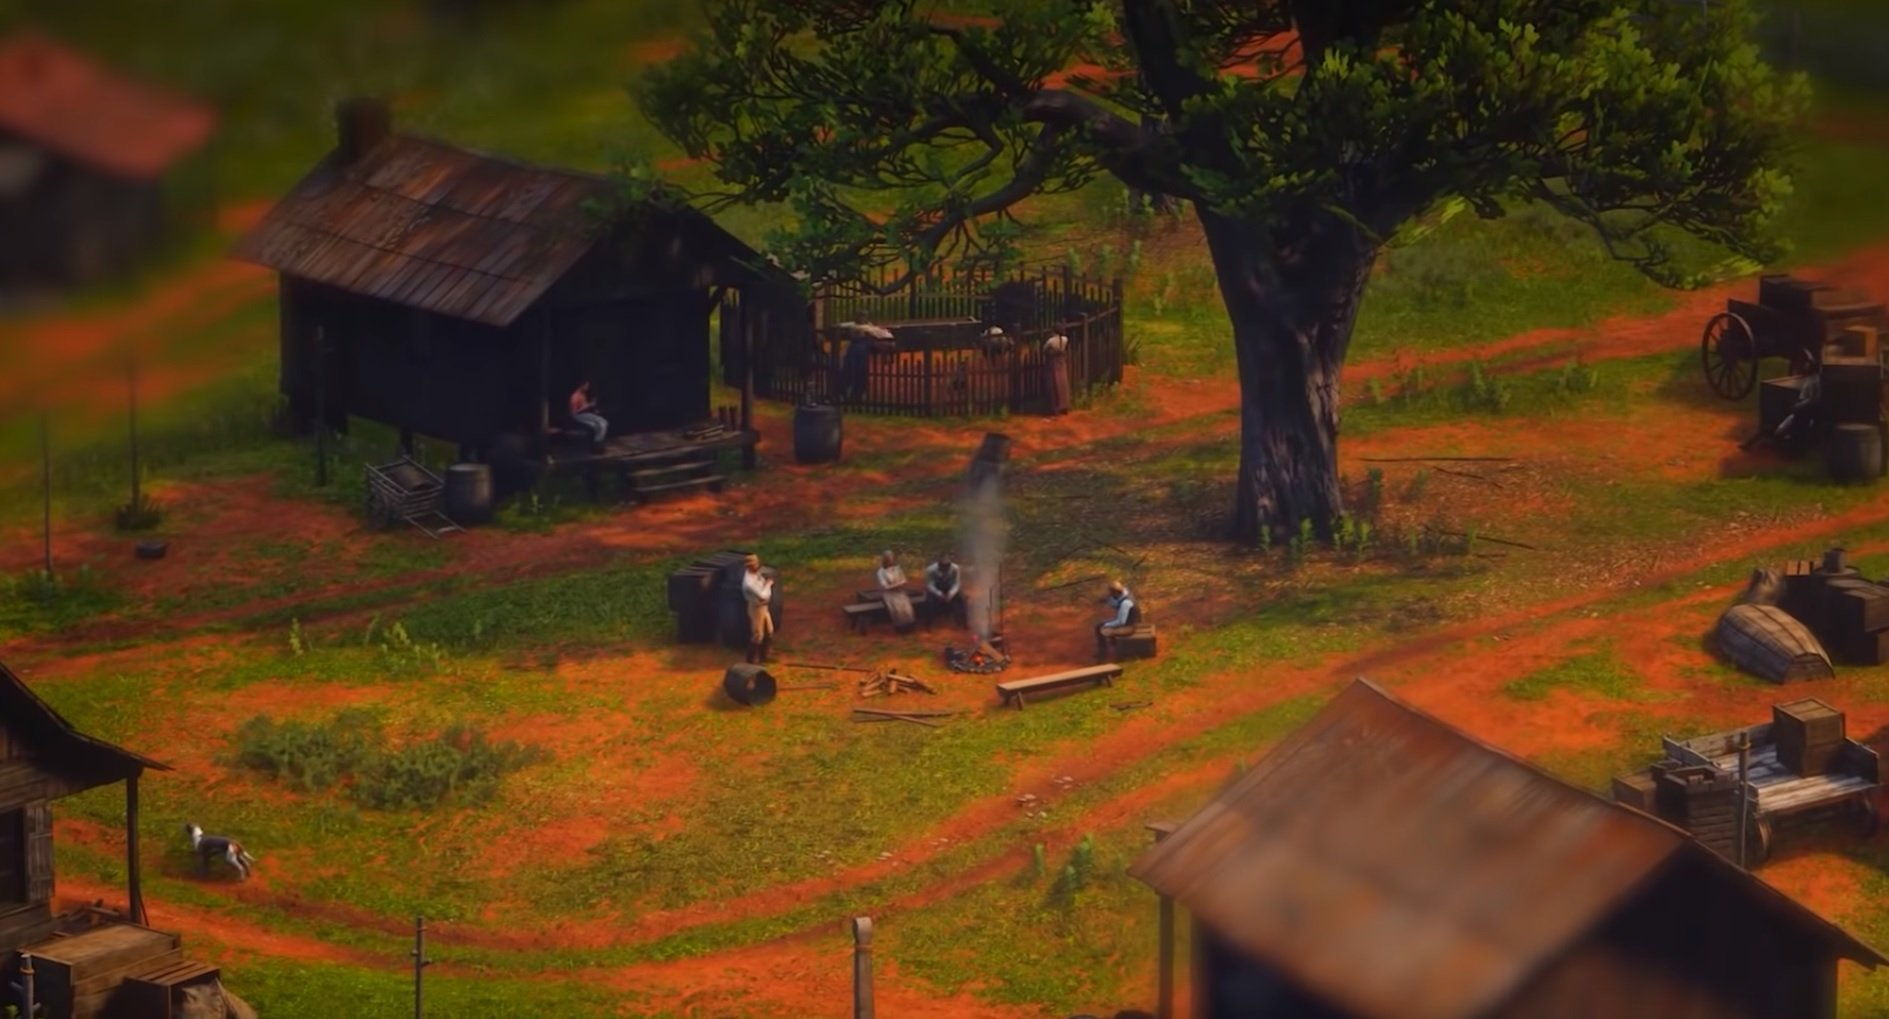 See the world of Red Dead Redemption 2 from a whole new perspective with the 'Tilt Shift' mod